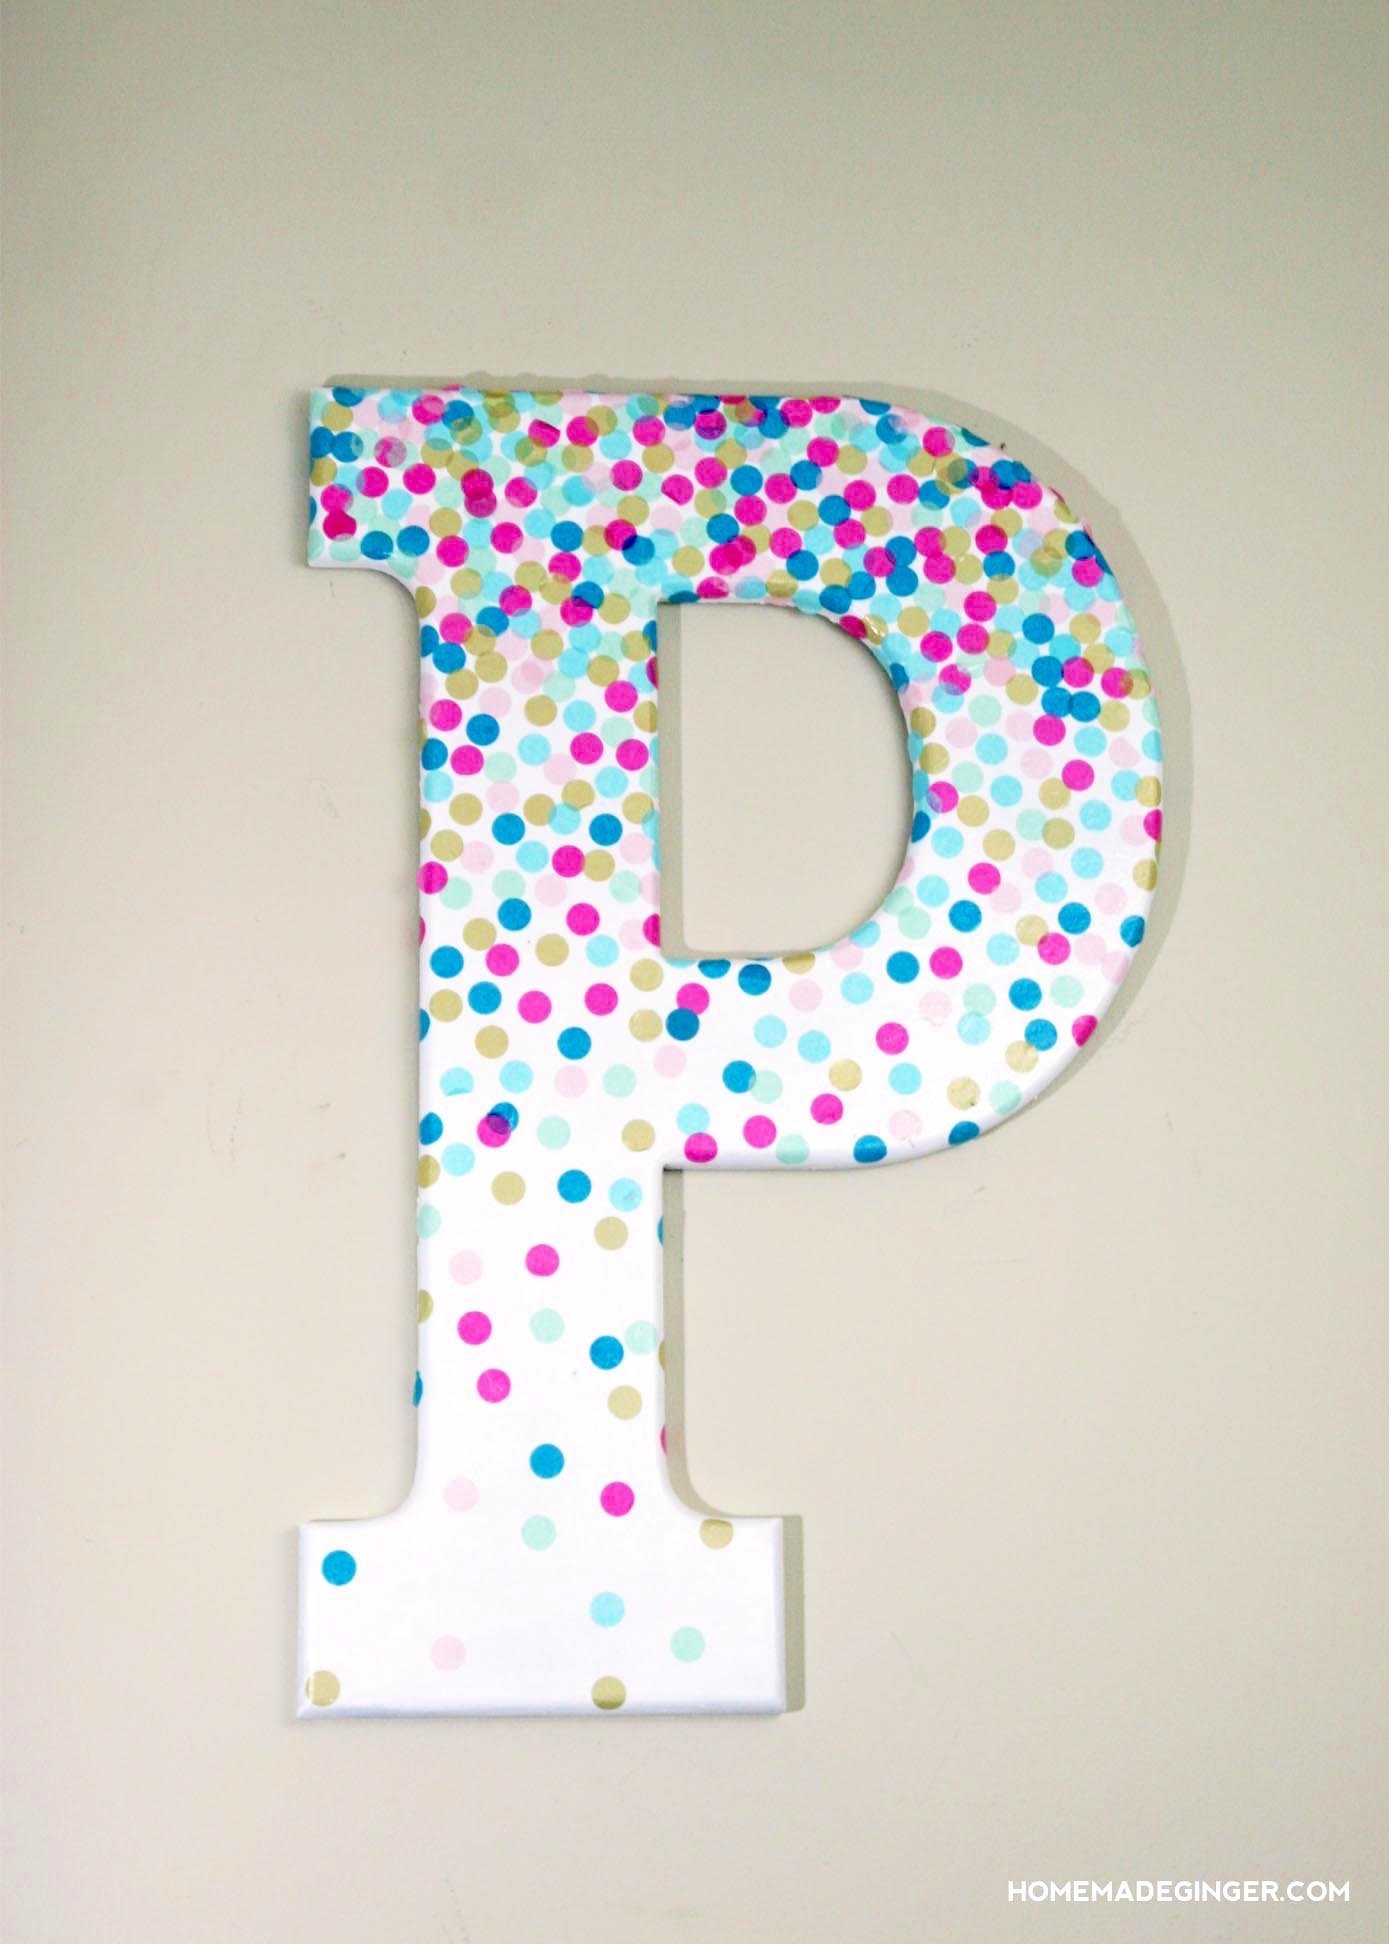 10 Fashionable Ideas For Decorating Wooden Letters diy wall art confetti letter homemade ginger 2020